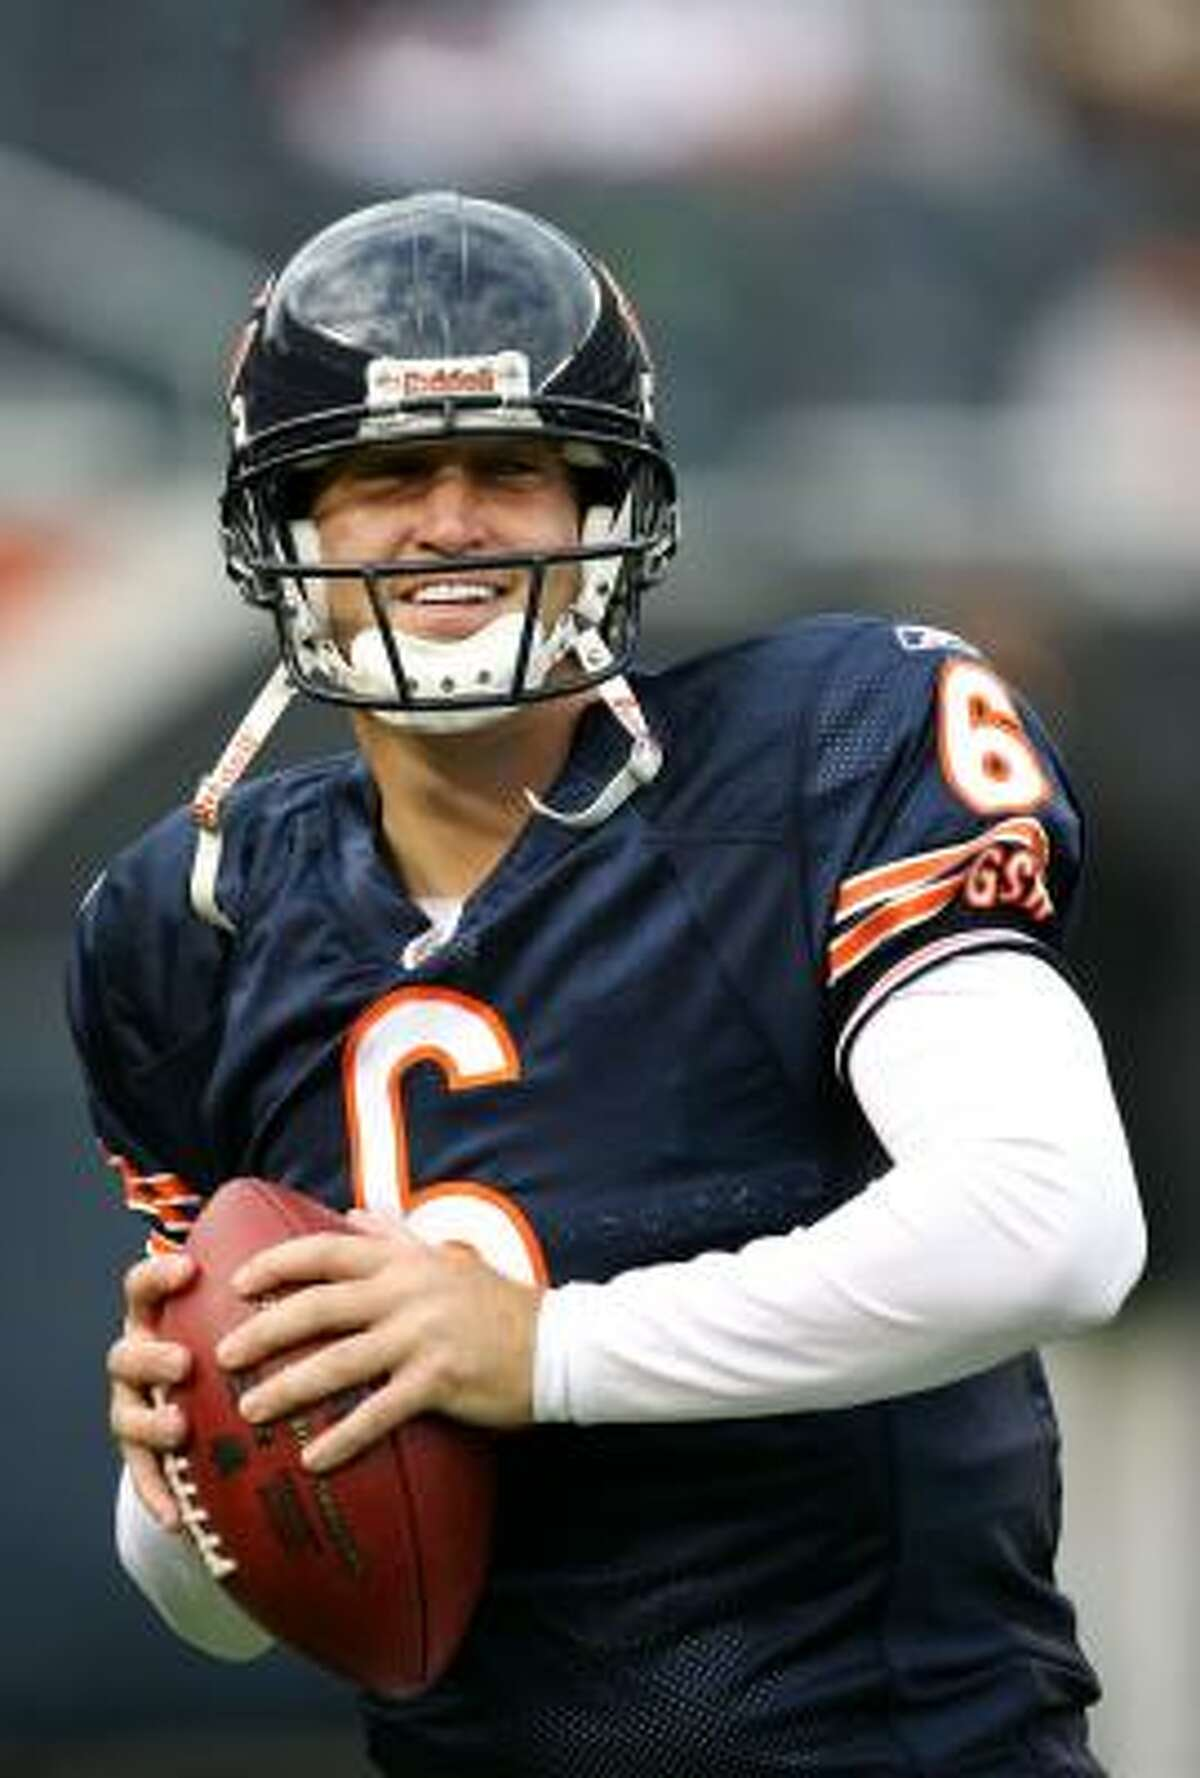 Jay Cutler requested a trade during the offseason and landed in Chicago to be the Bears' new QB this season.